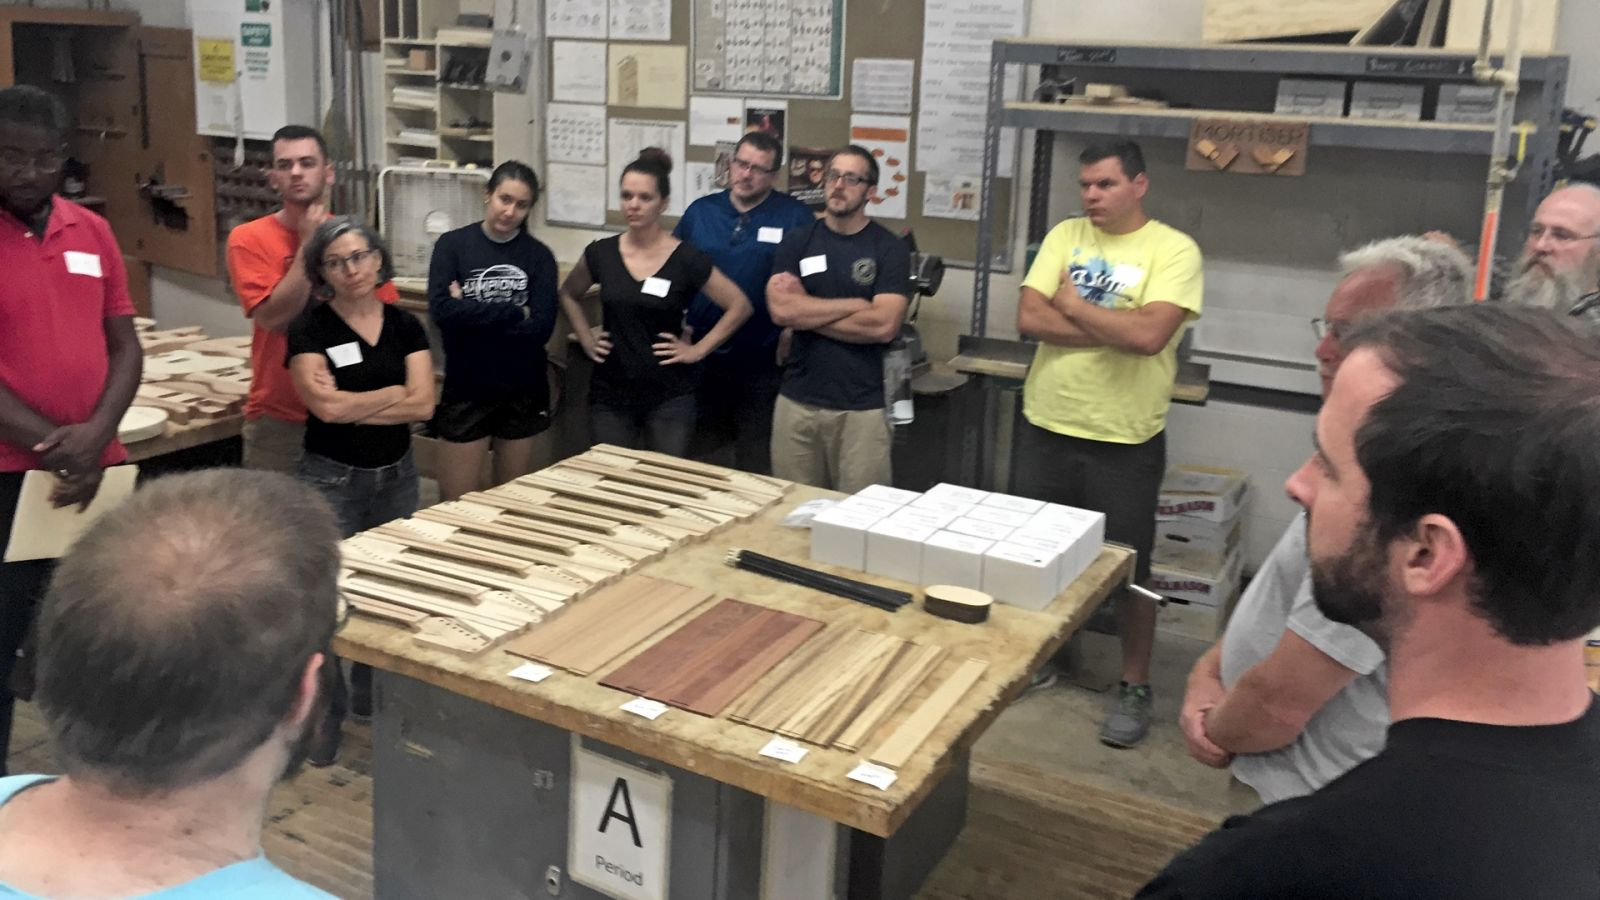 Pennsbury High School teachers receive directions as they prepare to build electric guitars